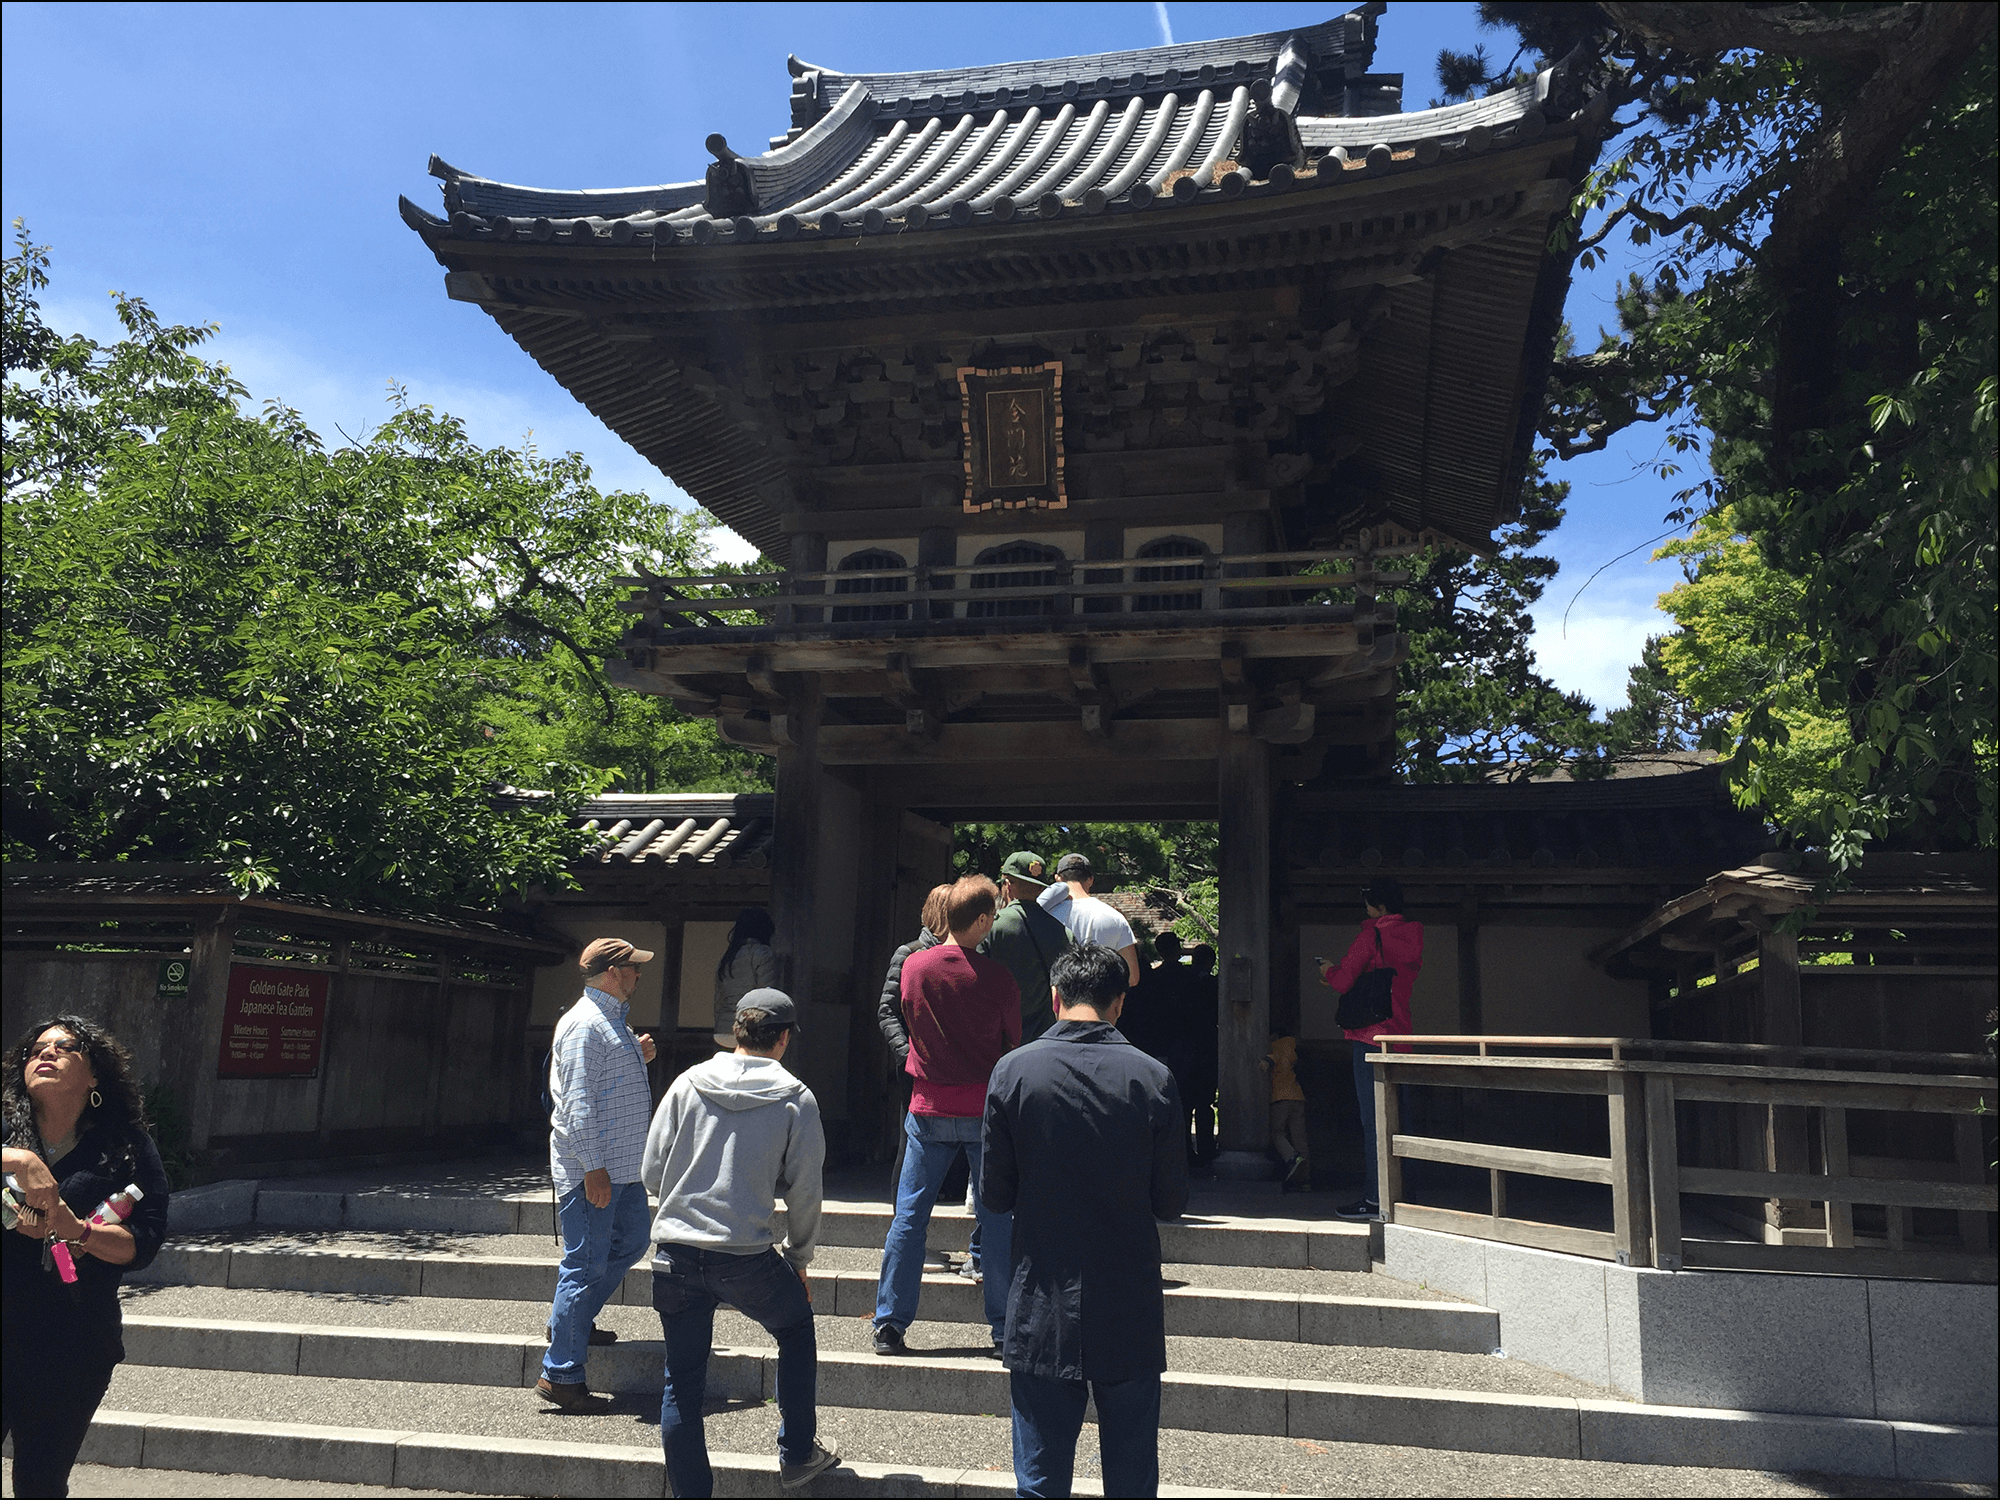 GOLDEN GATE PARK – CHINESE PAVILION